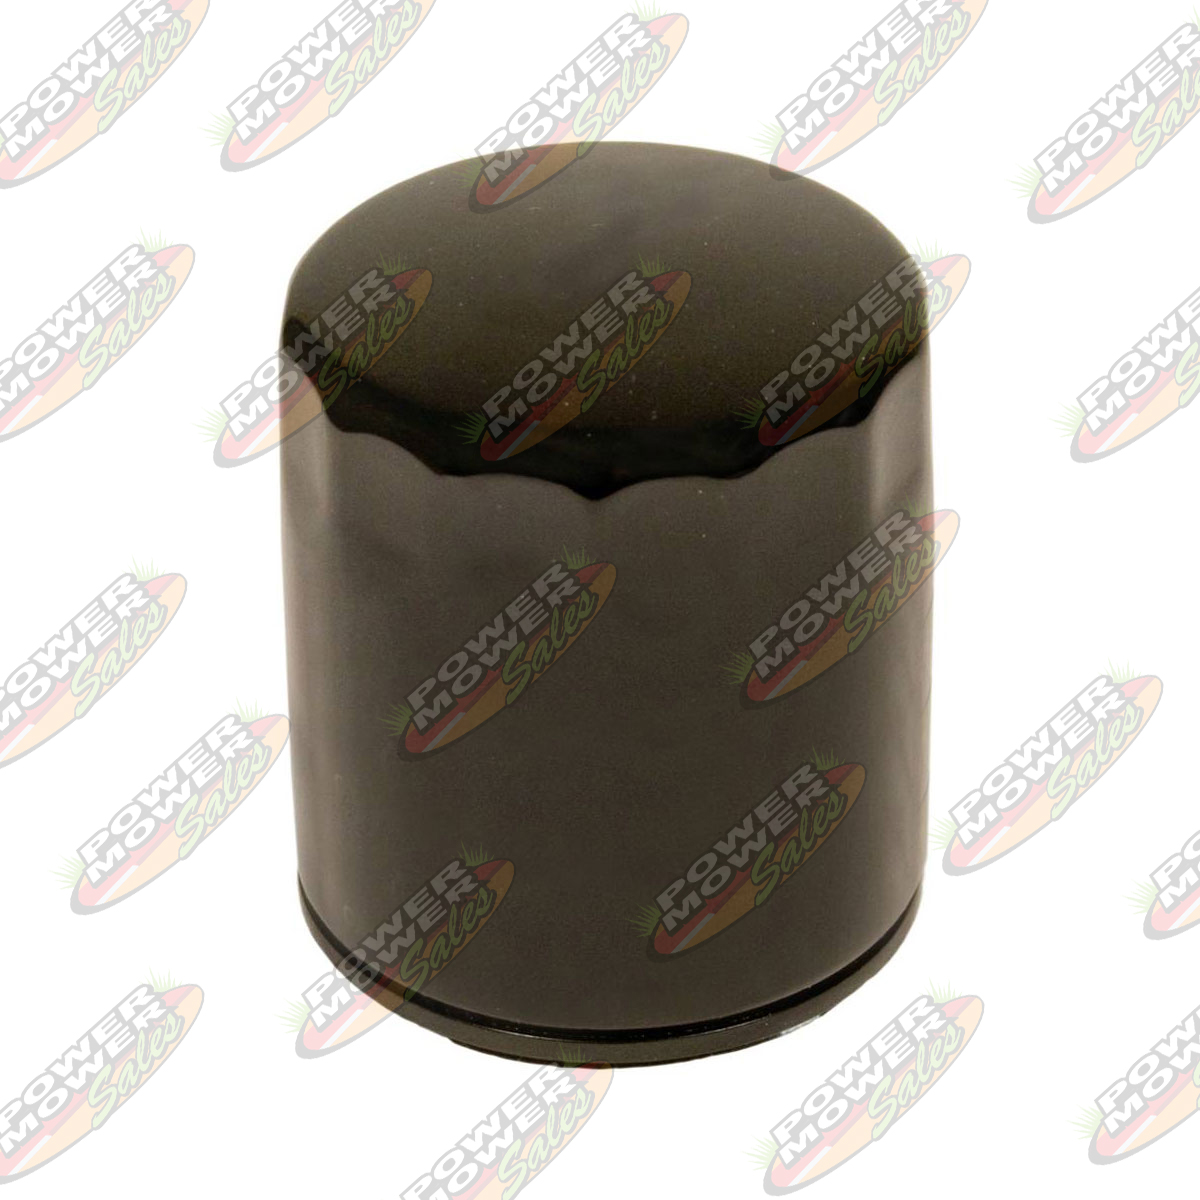 Fuel Filter Kubota 70000 43081 Power Mower Sales Filters Quick View